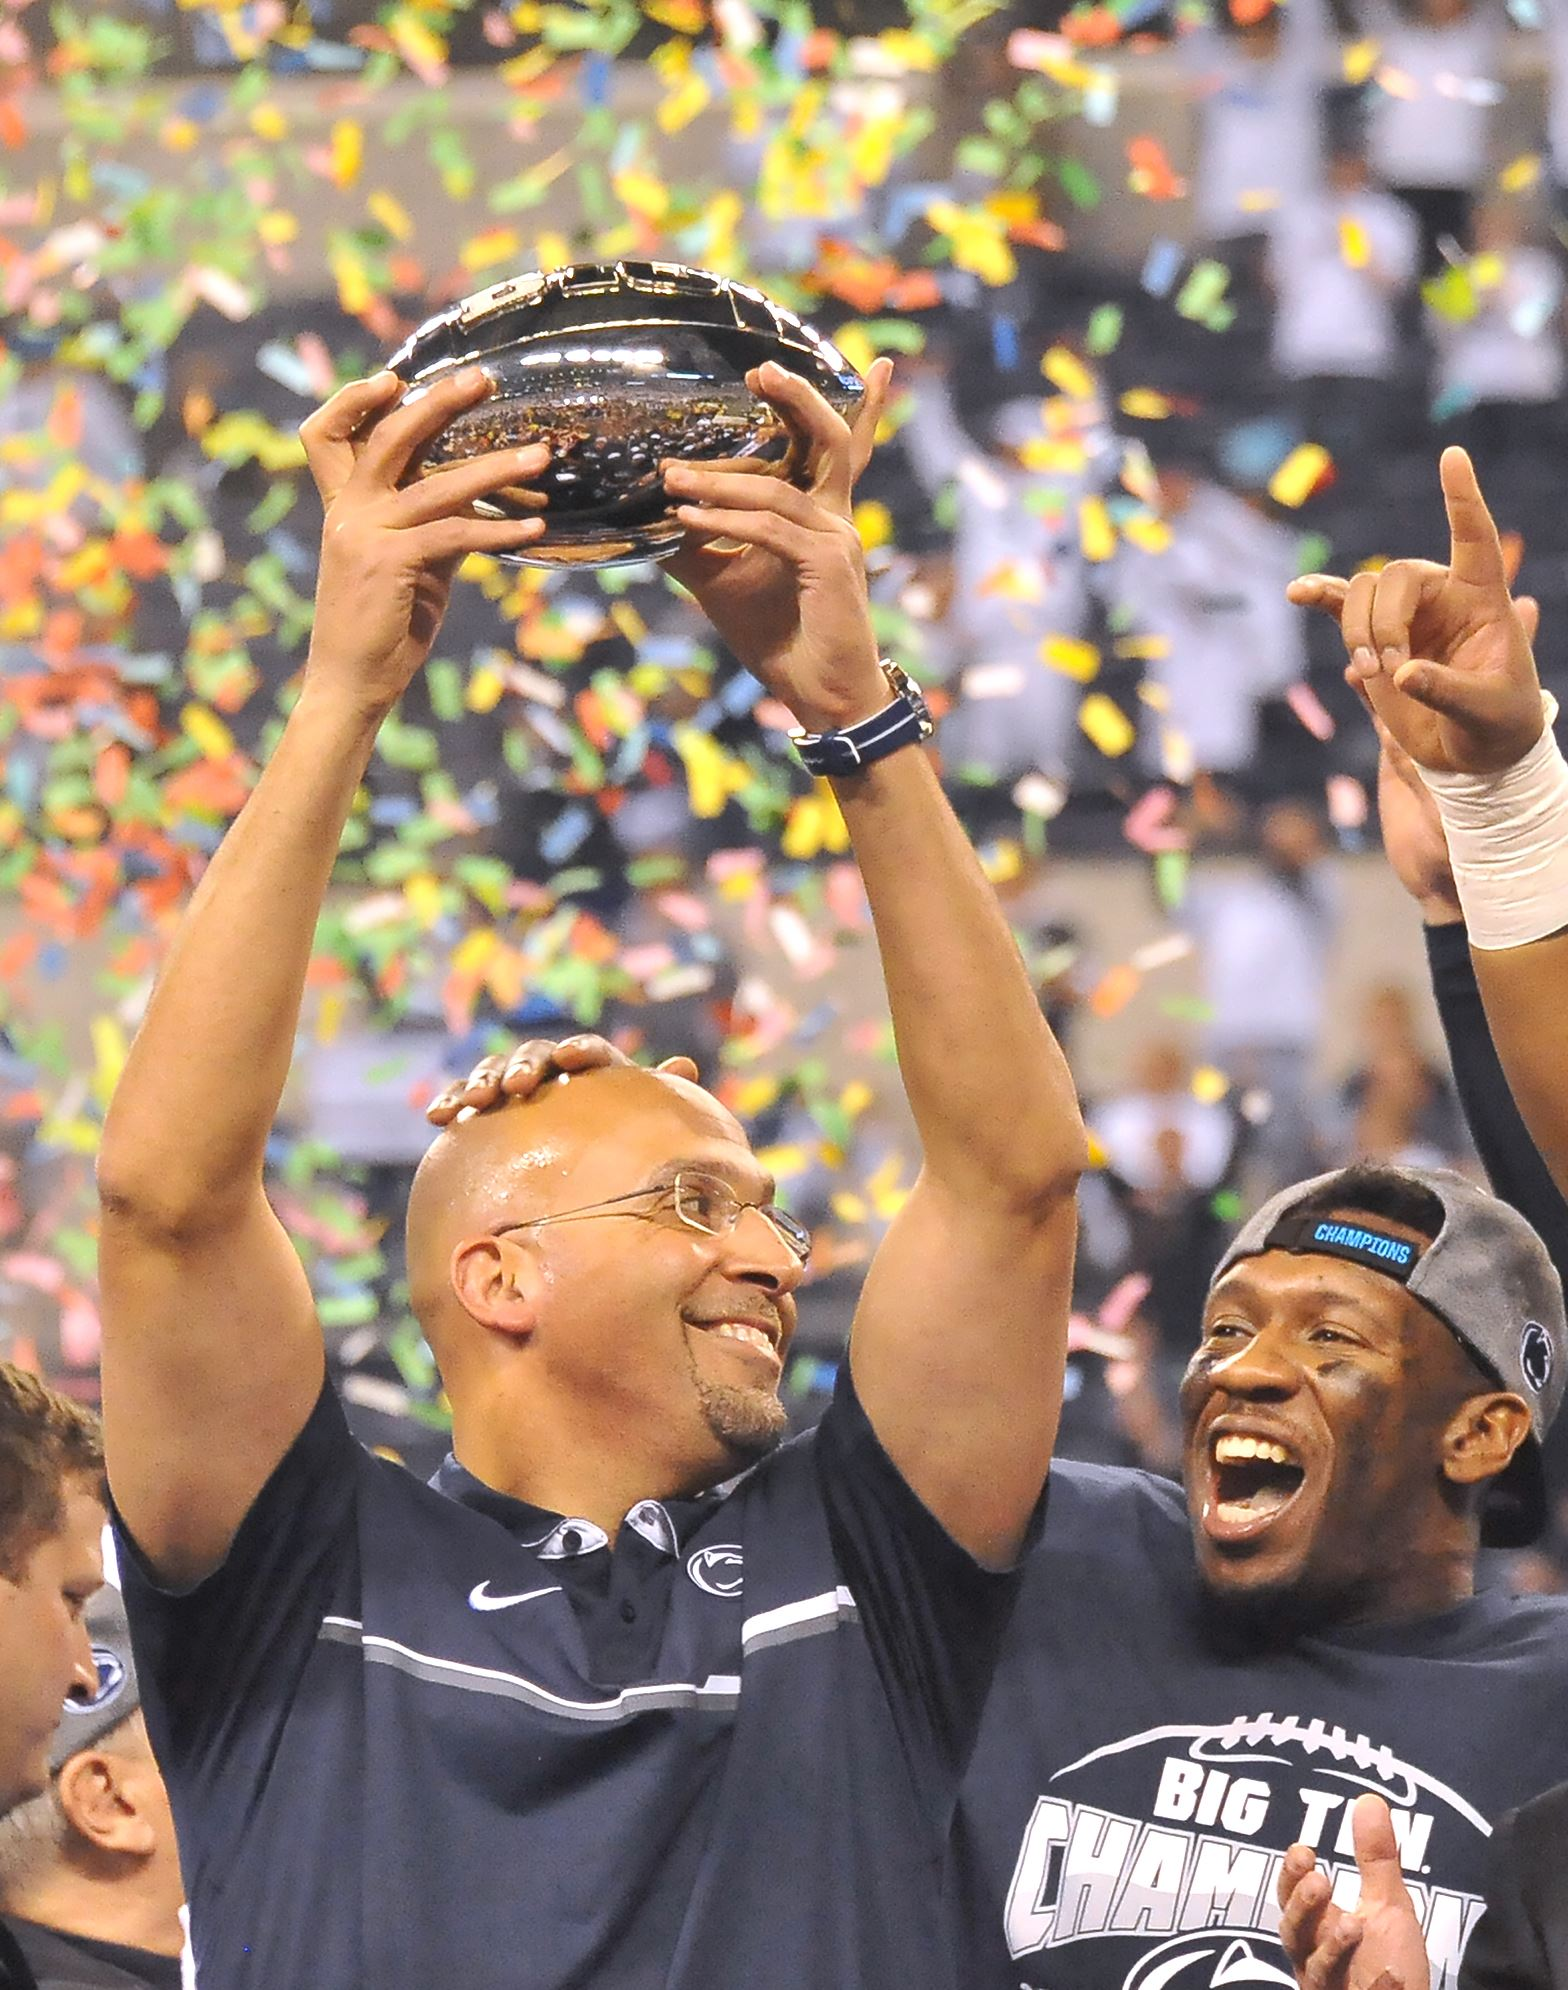 Southern California meets Penn State in 103rd Rose Bowl